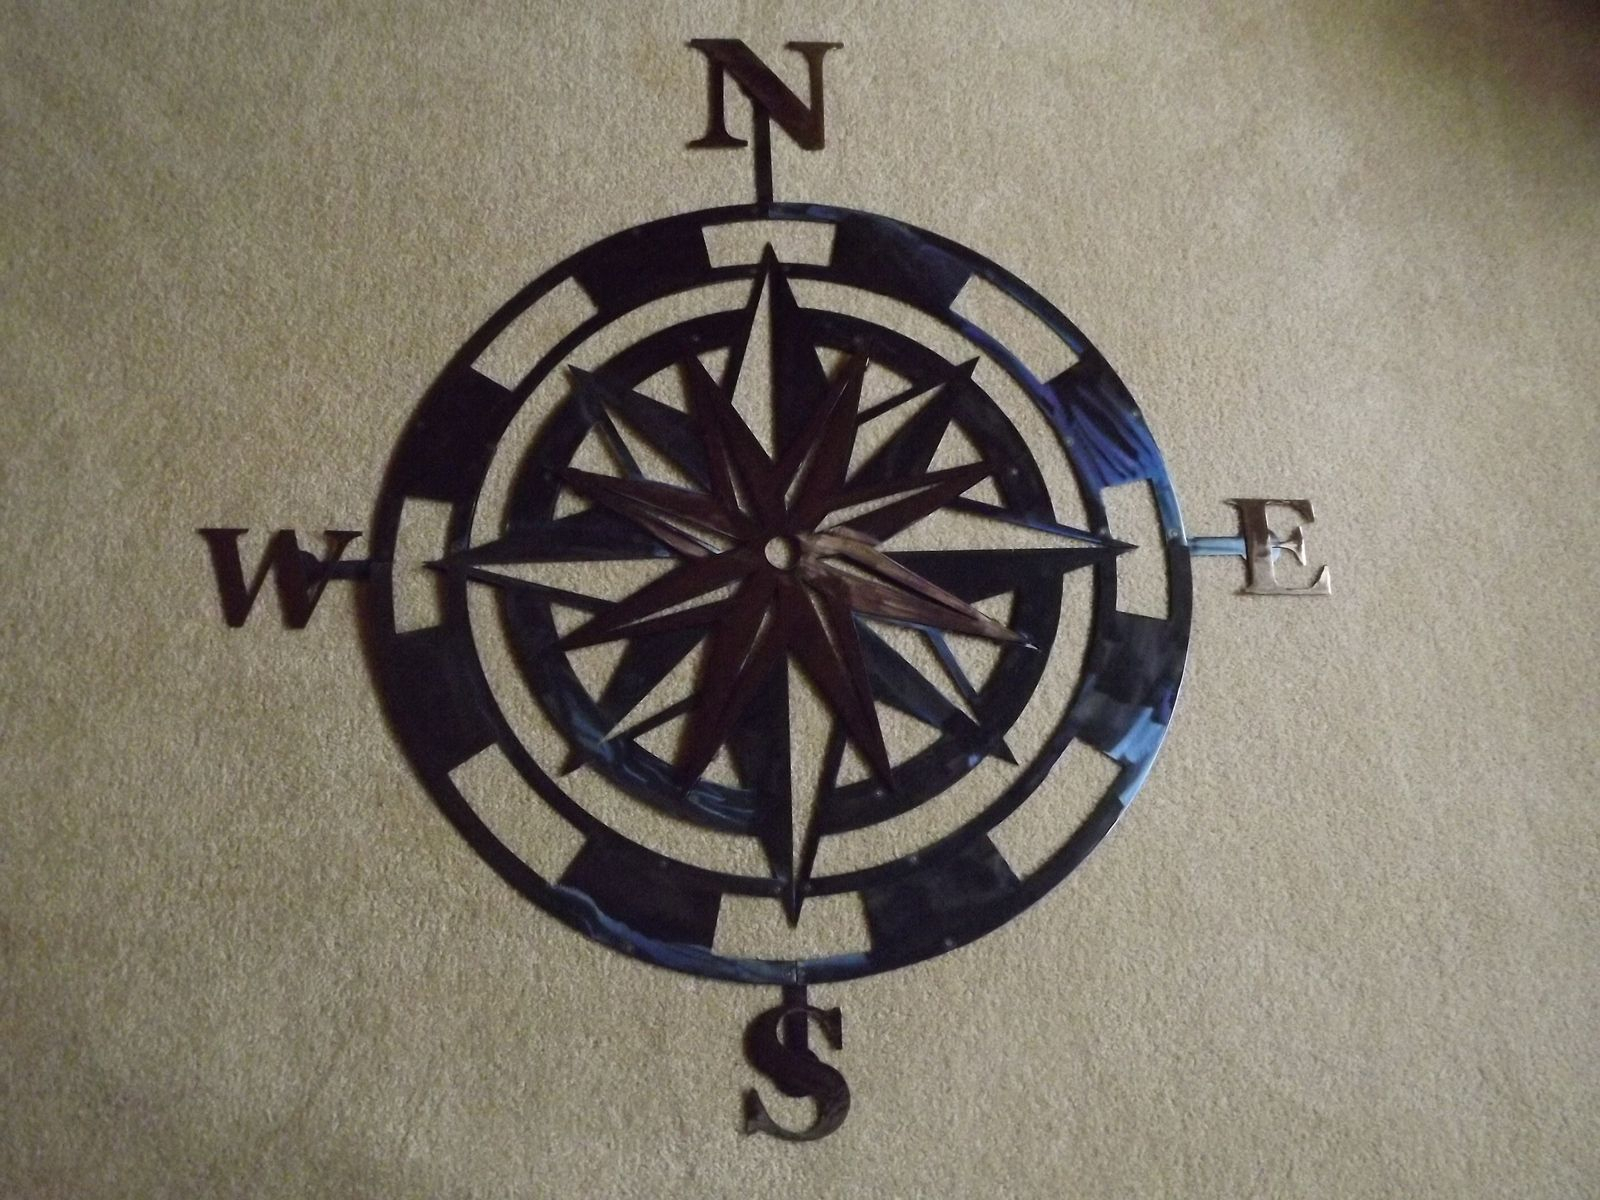 Handmade 36 Inch Metal Compass Rose Wall Artsuperior Iron Artz With Well Liked Round Compass Wall Decor (View 11 of 20)